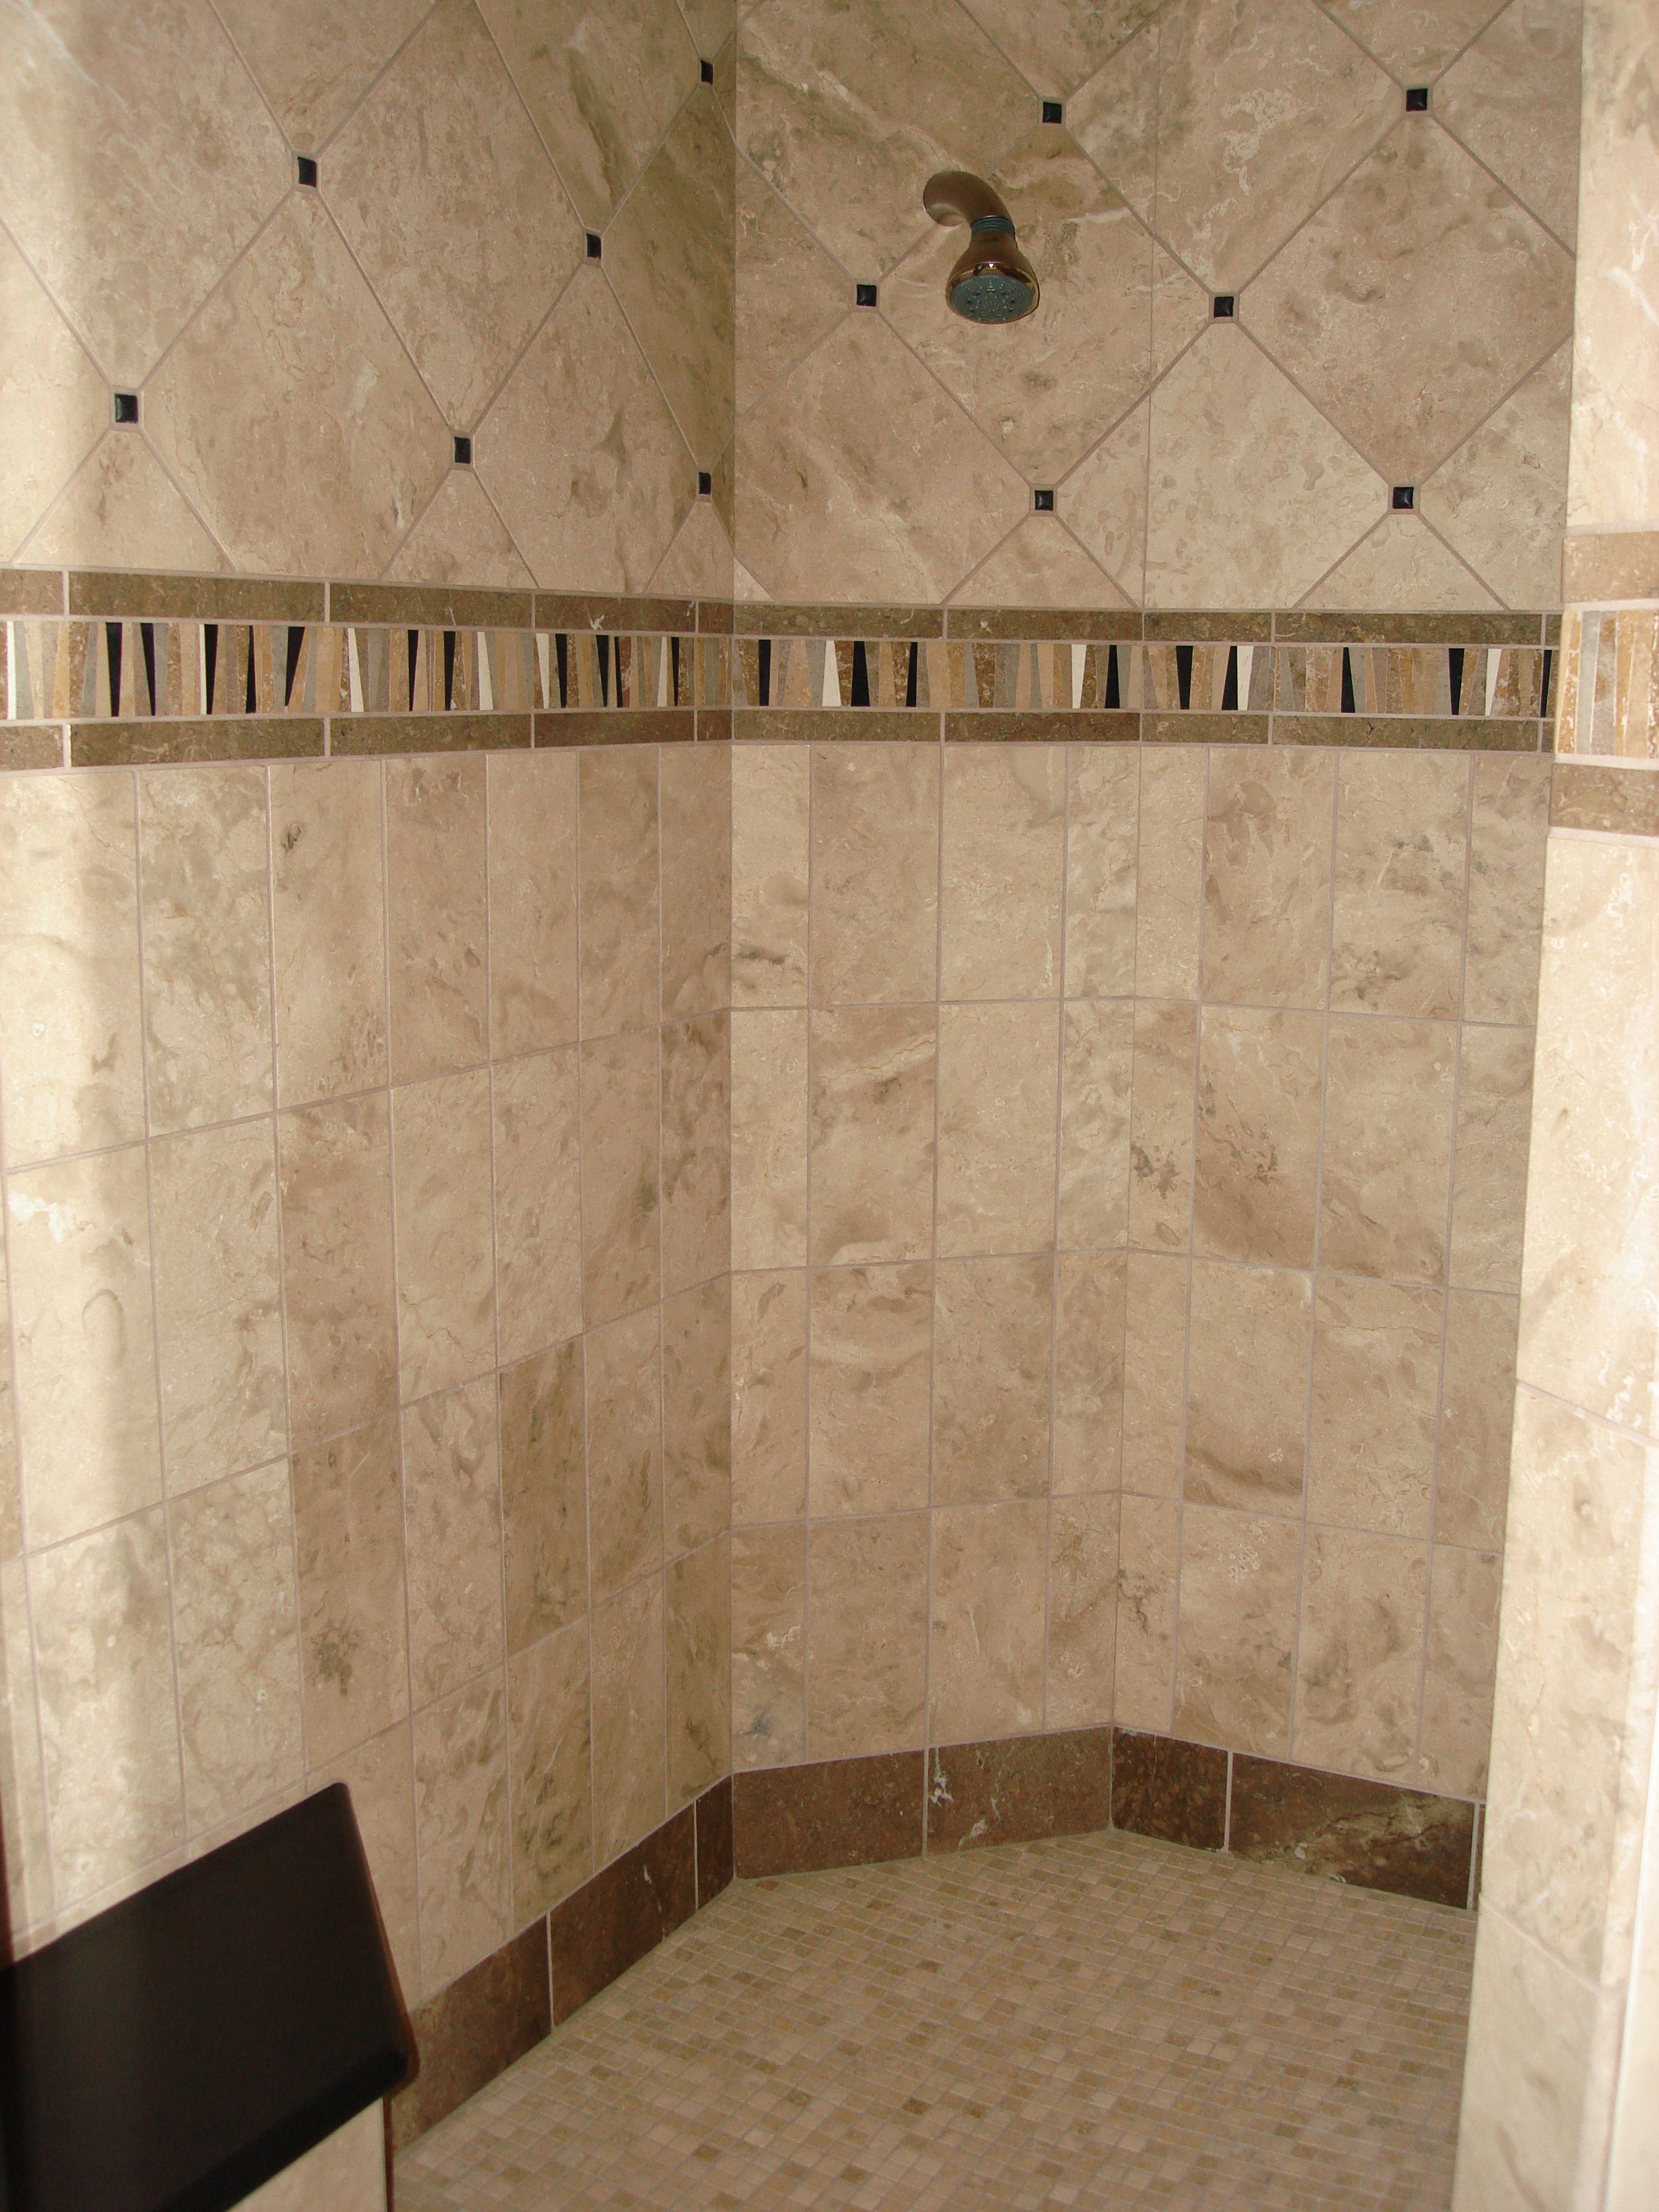 ceramic tile bathrooms bathroom on pinterest shower tile designs - Shower Tile Design Ideas